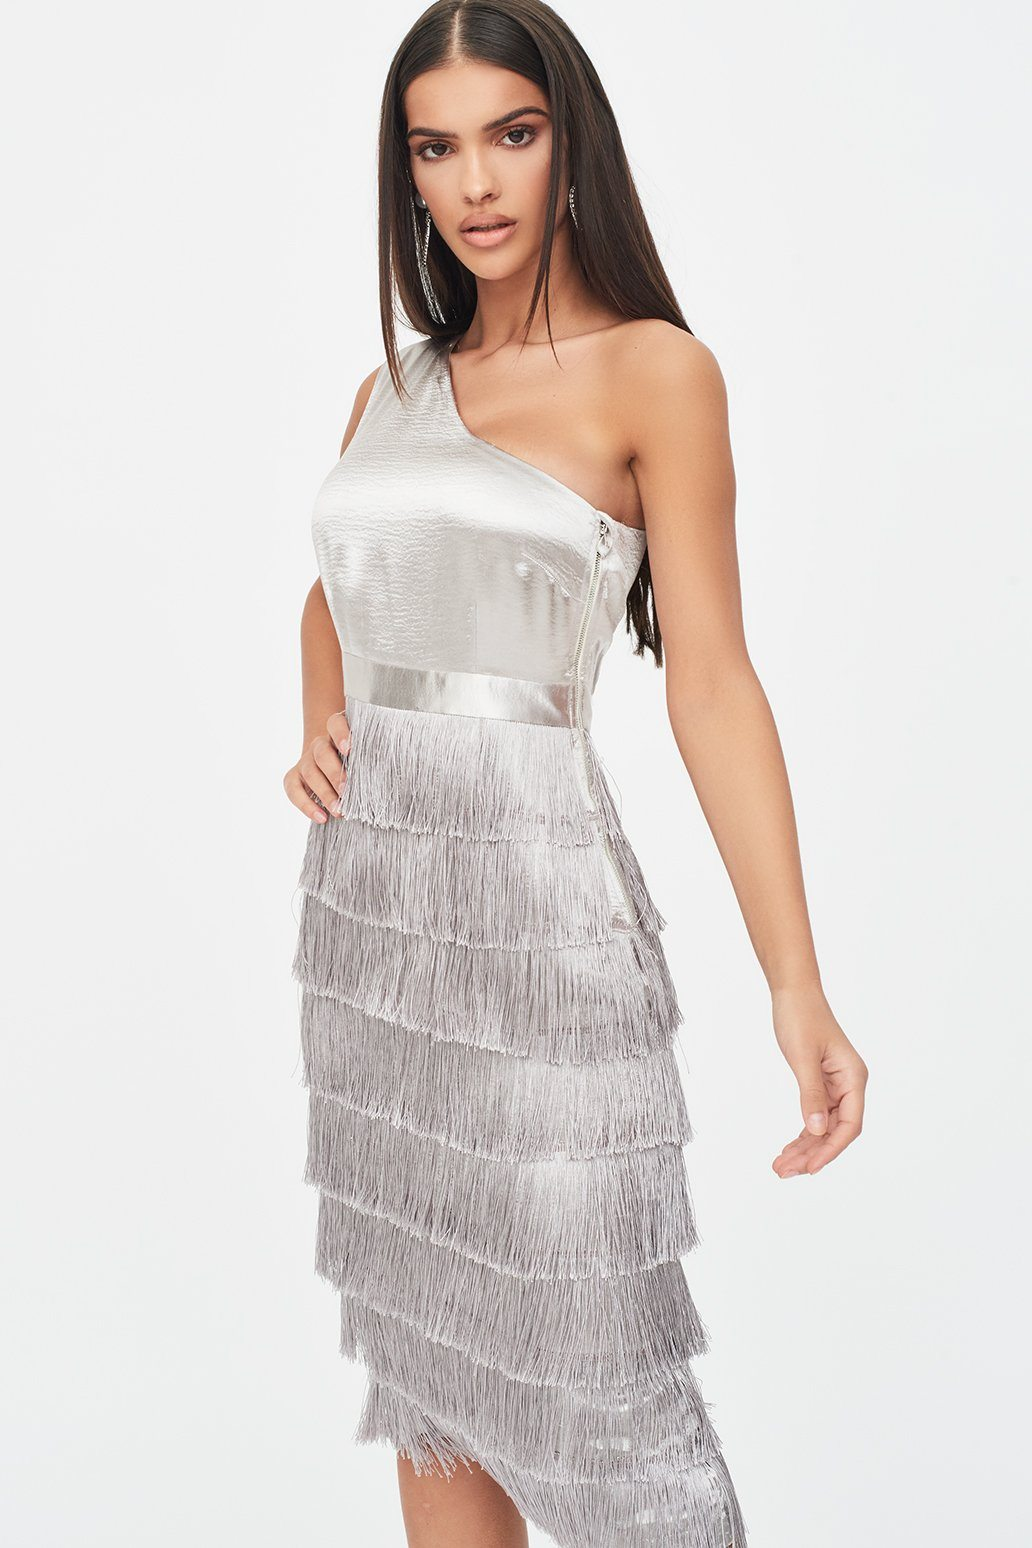 Rosie Connolly One Shoulder Fringe Dress in Metallic Silver